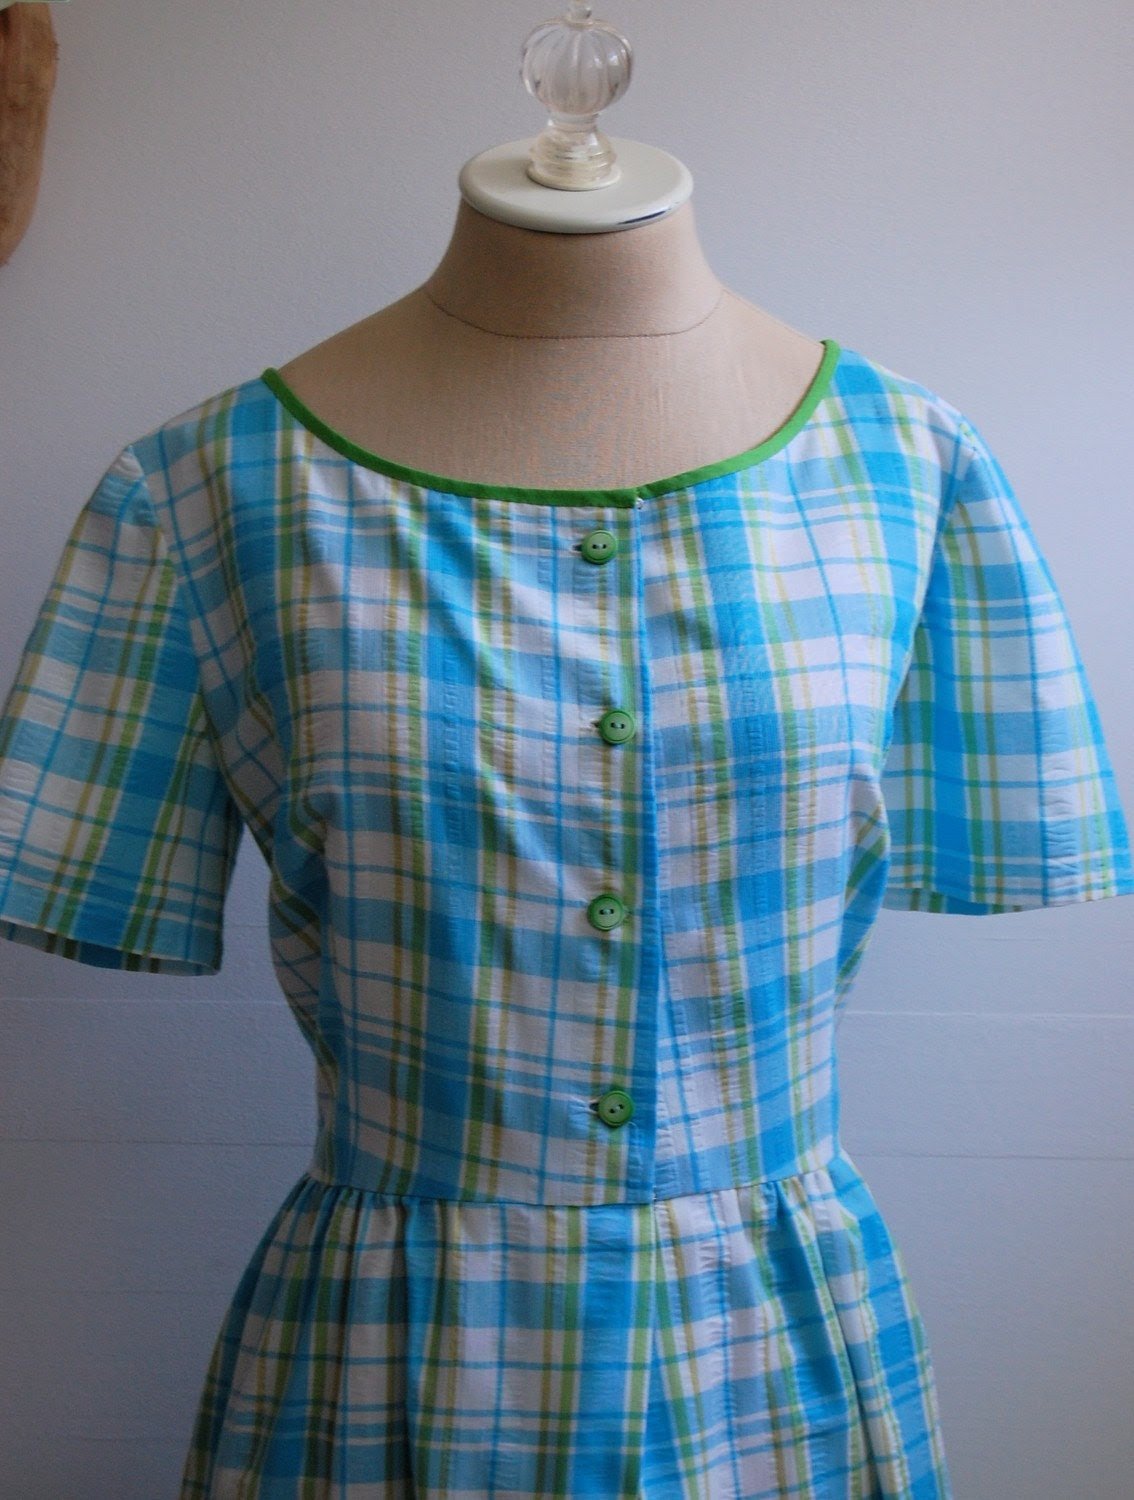 The Scooter- Vintage 1960s Plaid One Piece Romper L